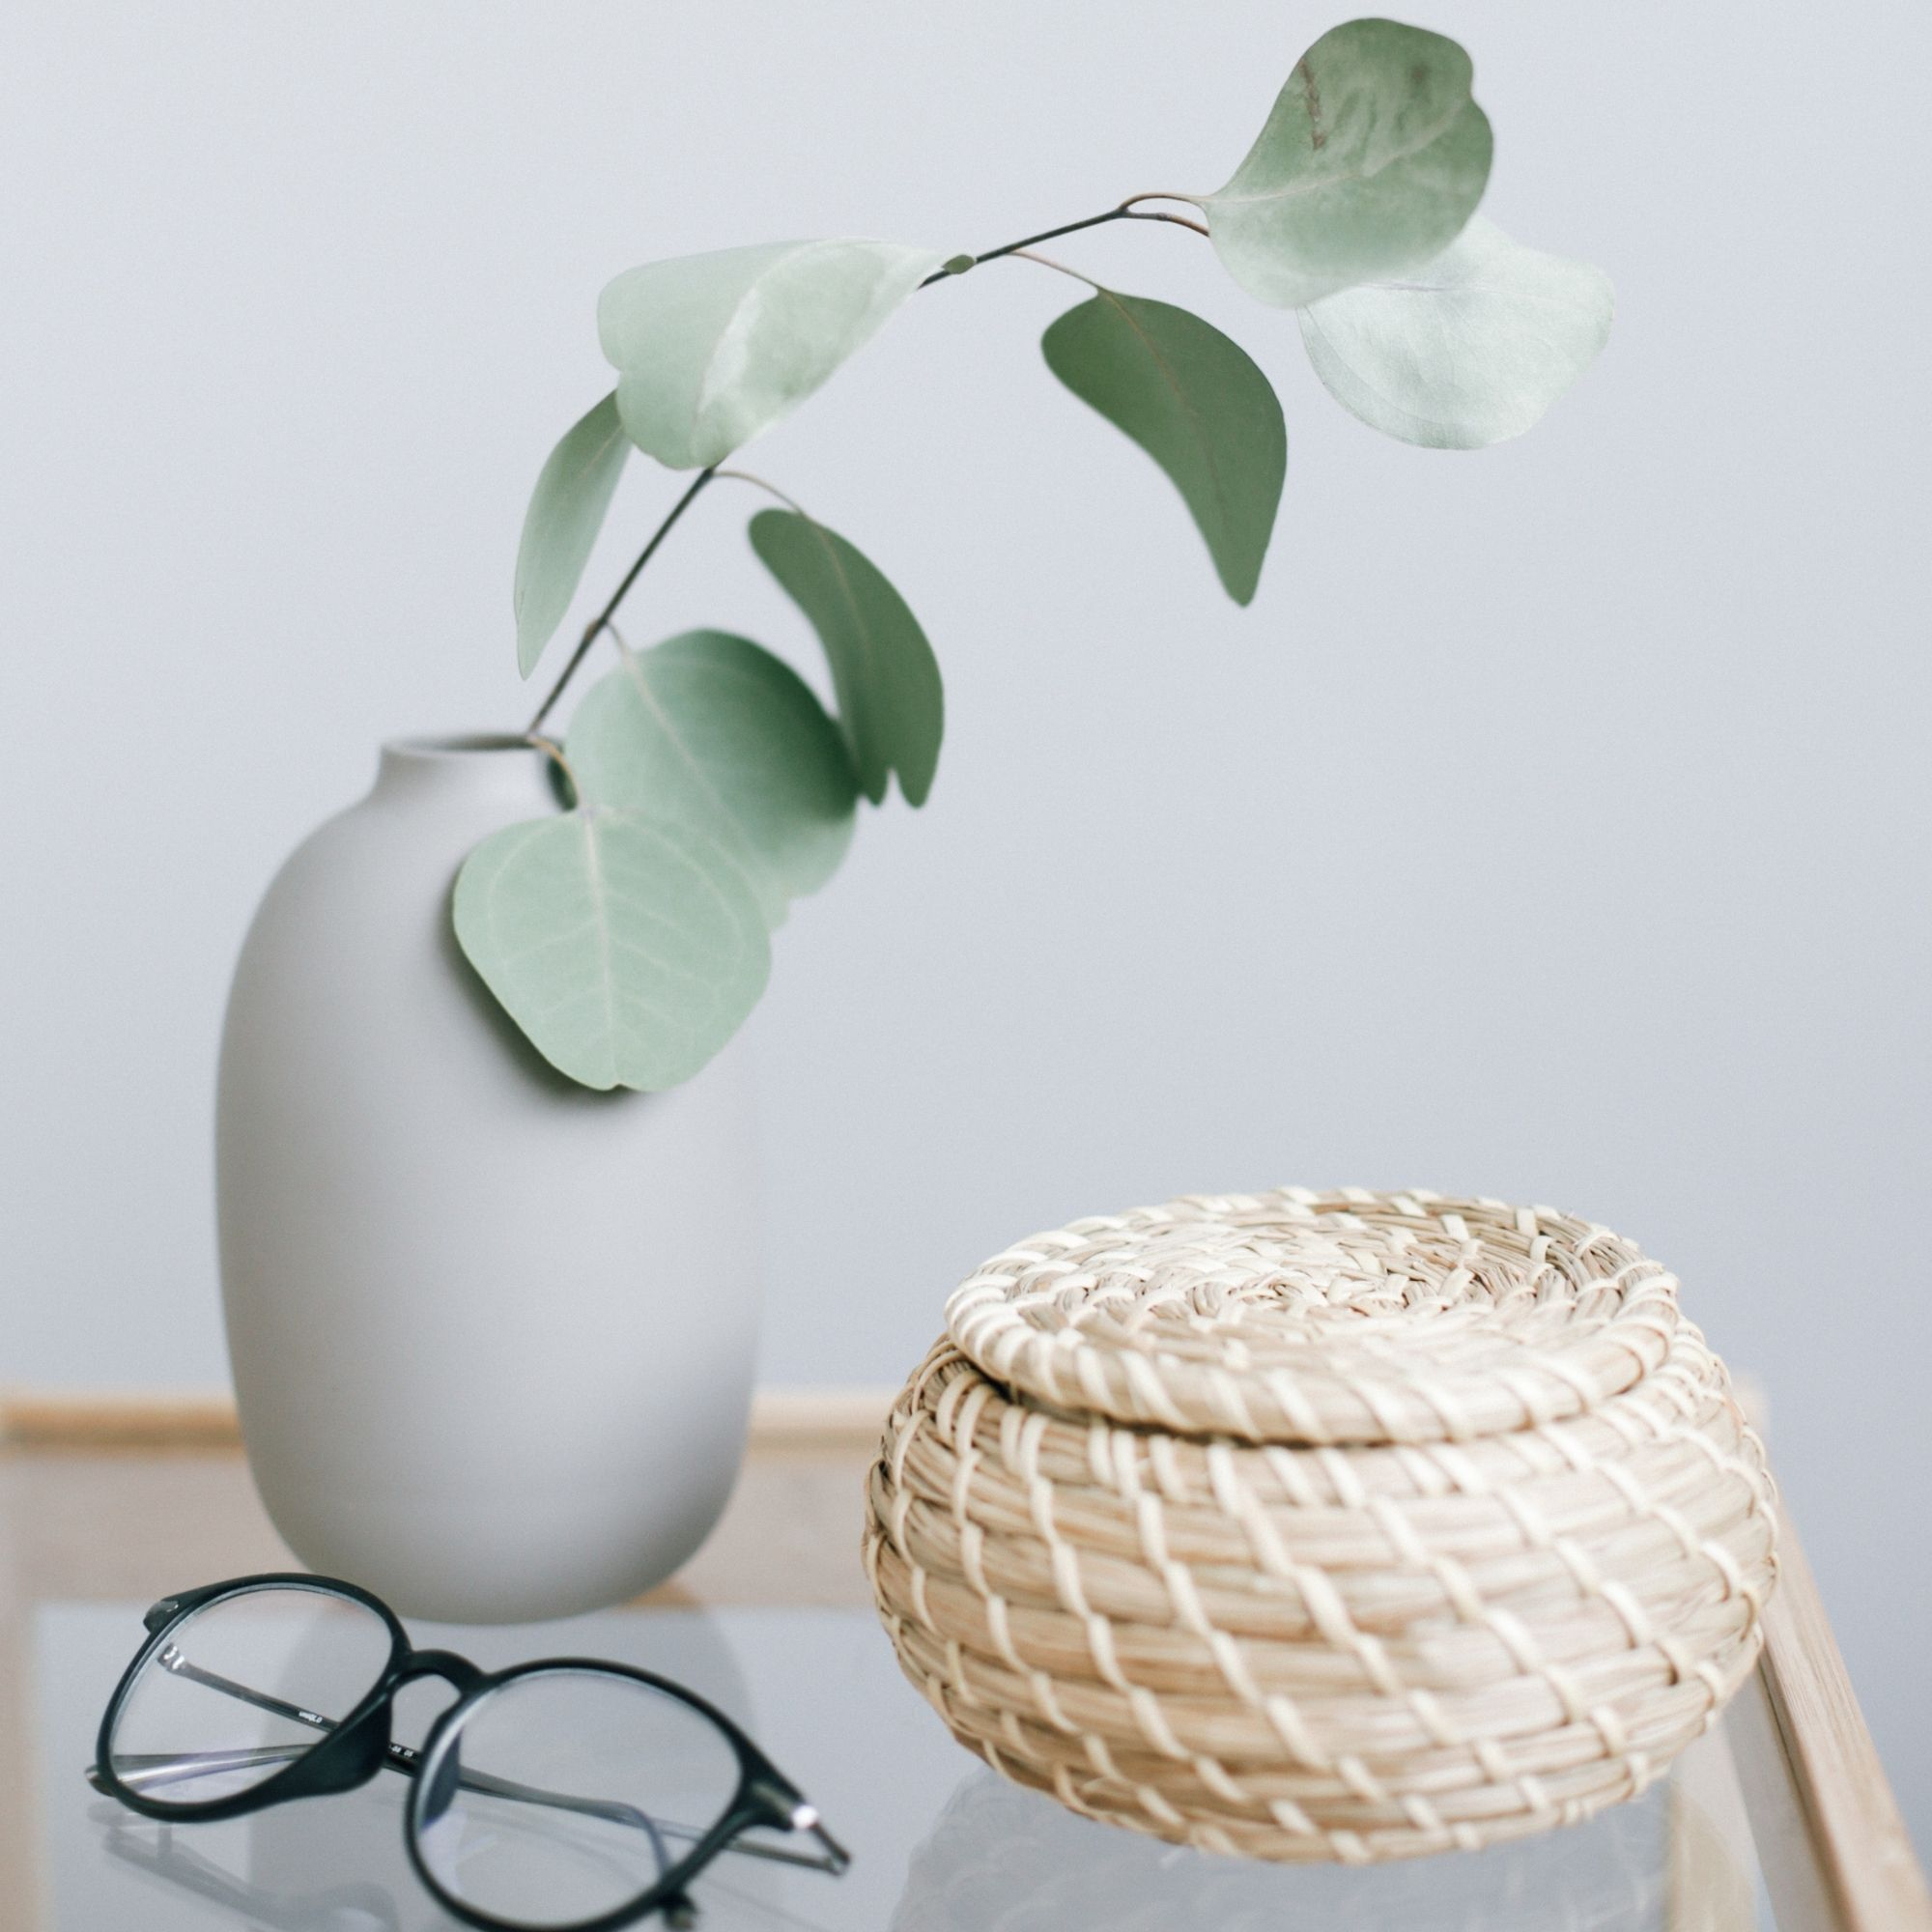 Glasses on table with brown wicker table and vase